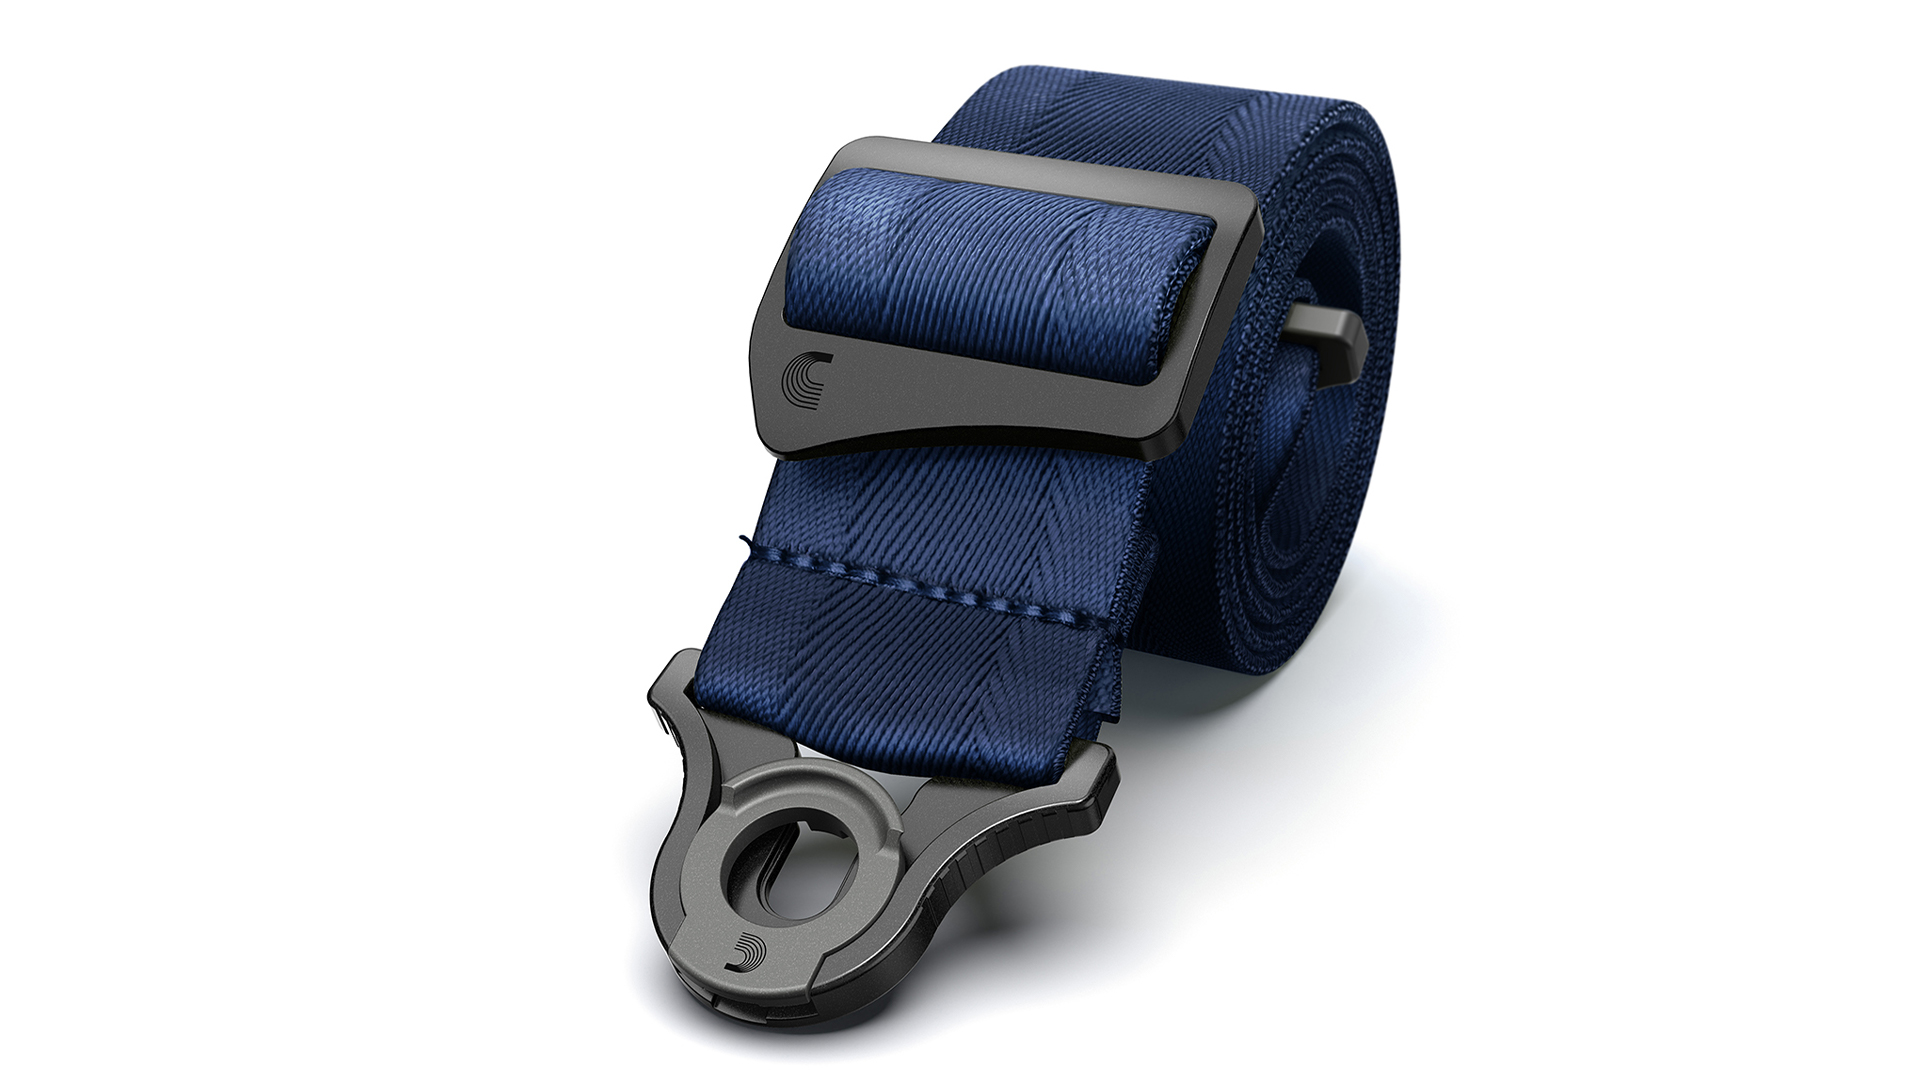 D'Addario Guitar Strap Lock Blue Rolled Product Render